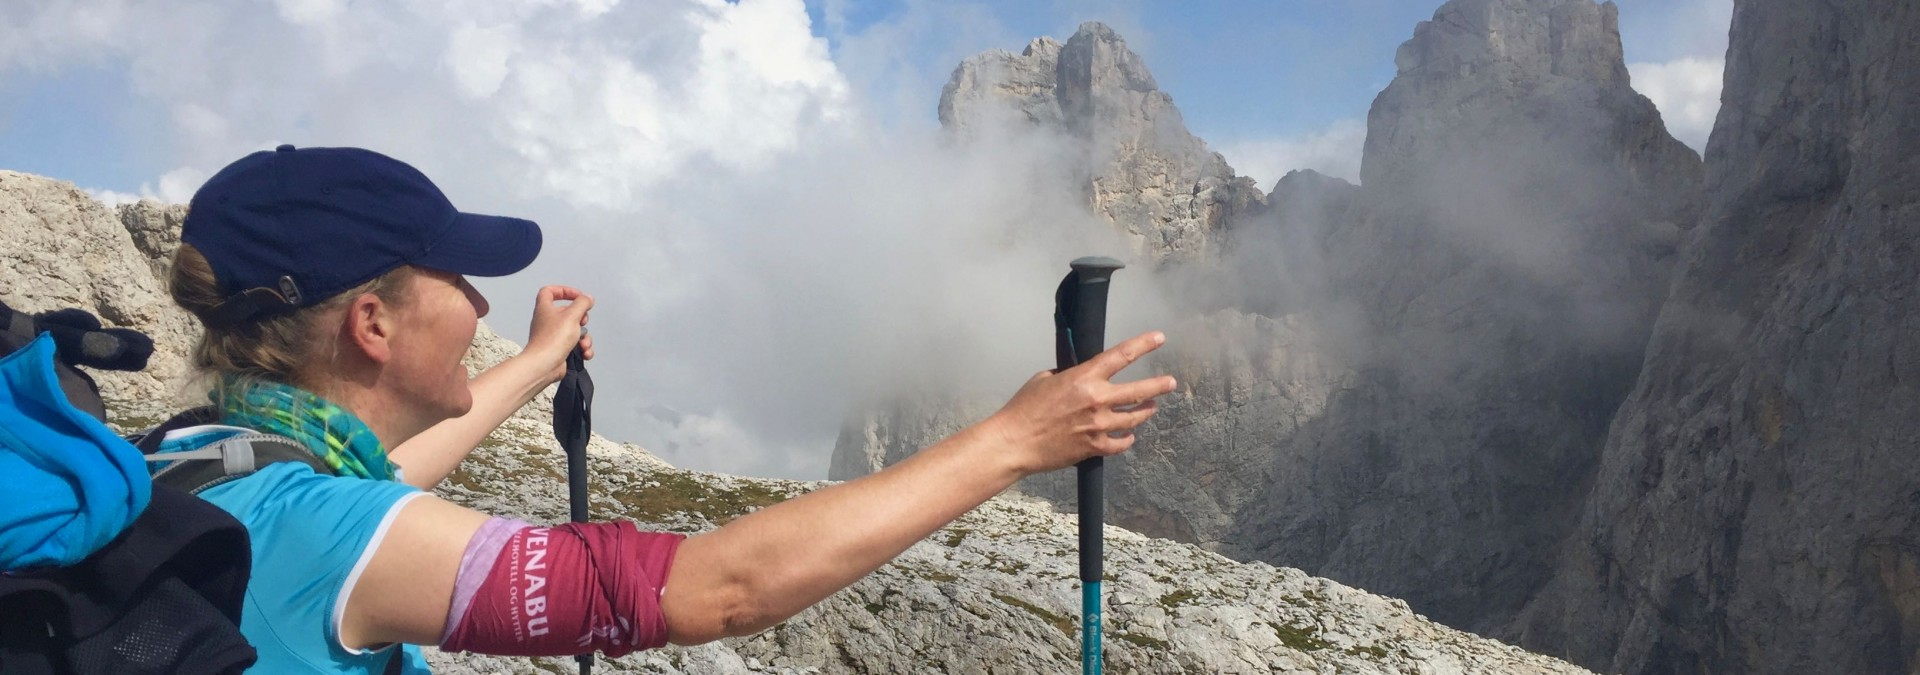 Dolomites High Route: Alta Via 2